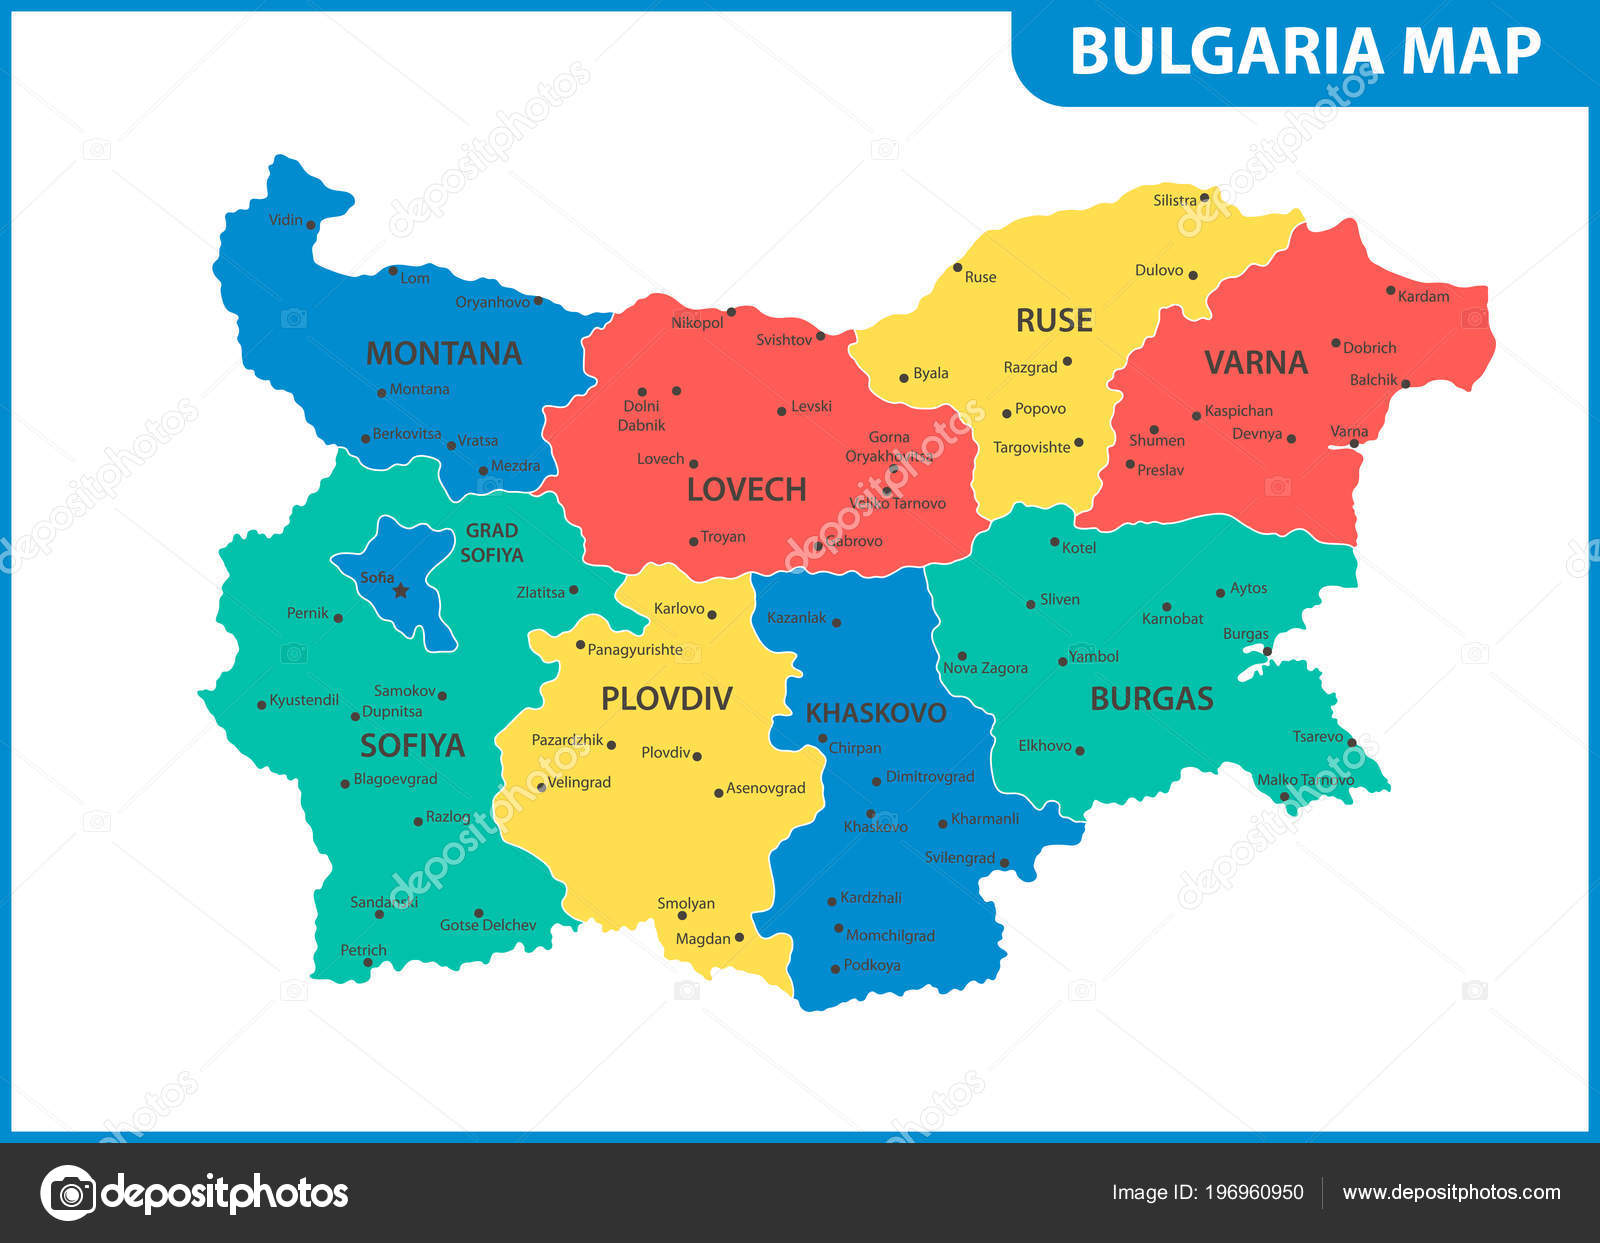 Bulgaria On Map Of World.Detailed Map Bulgaria Regions States Cities Capital Administrative